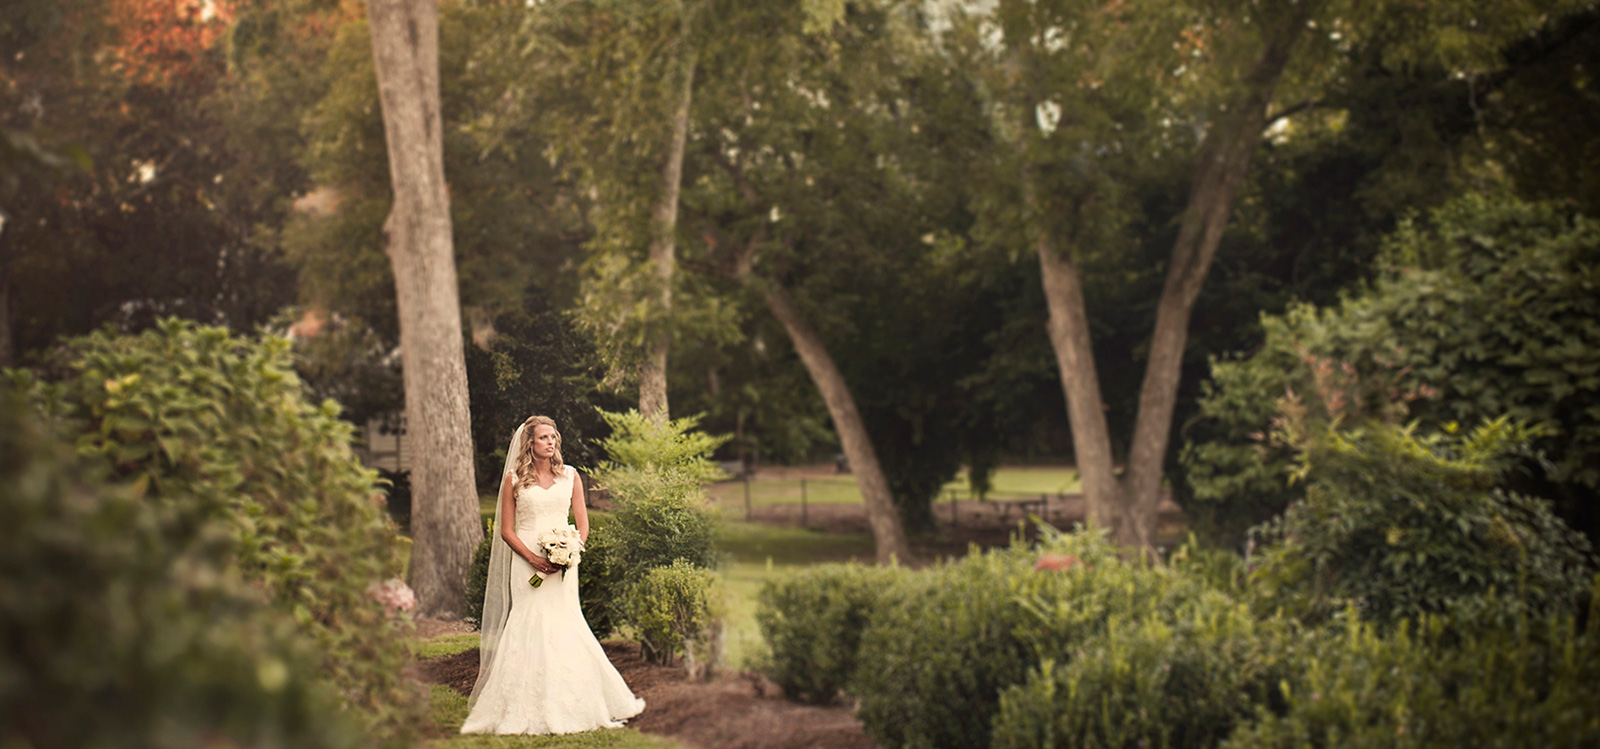 Plan the wedding of your dreams.